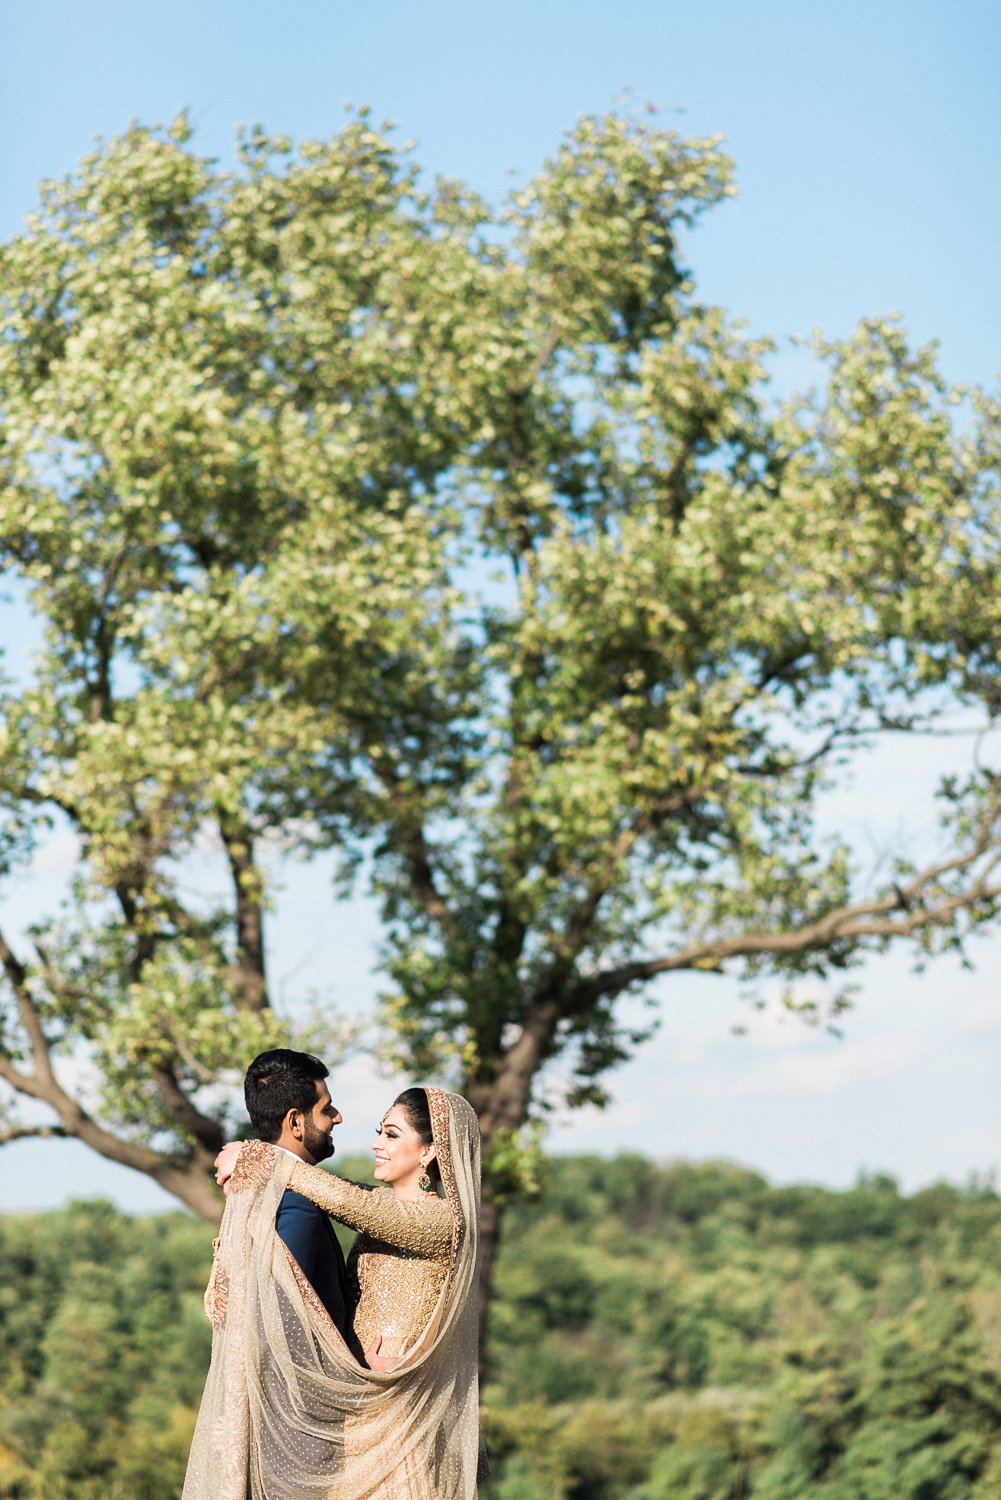 maha_salman_copper_creek_wedding-16.jpg